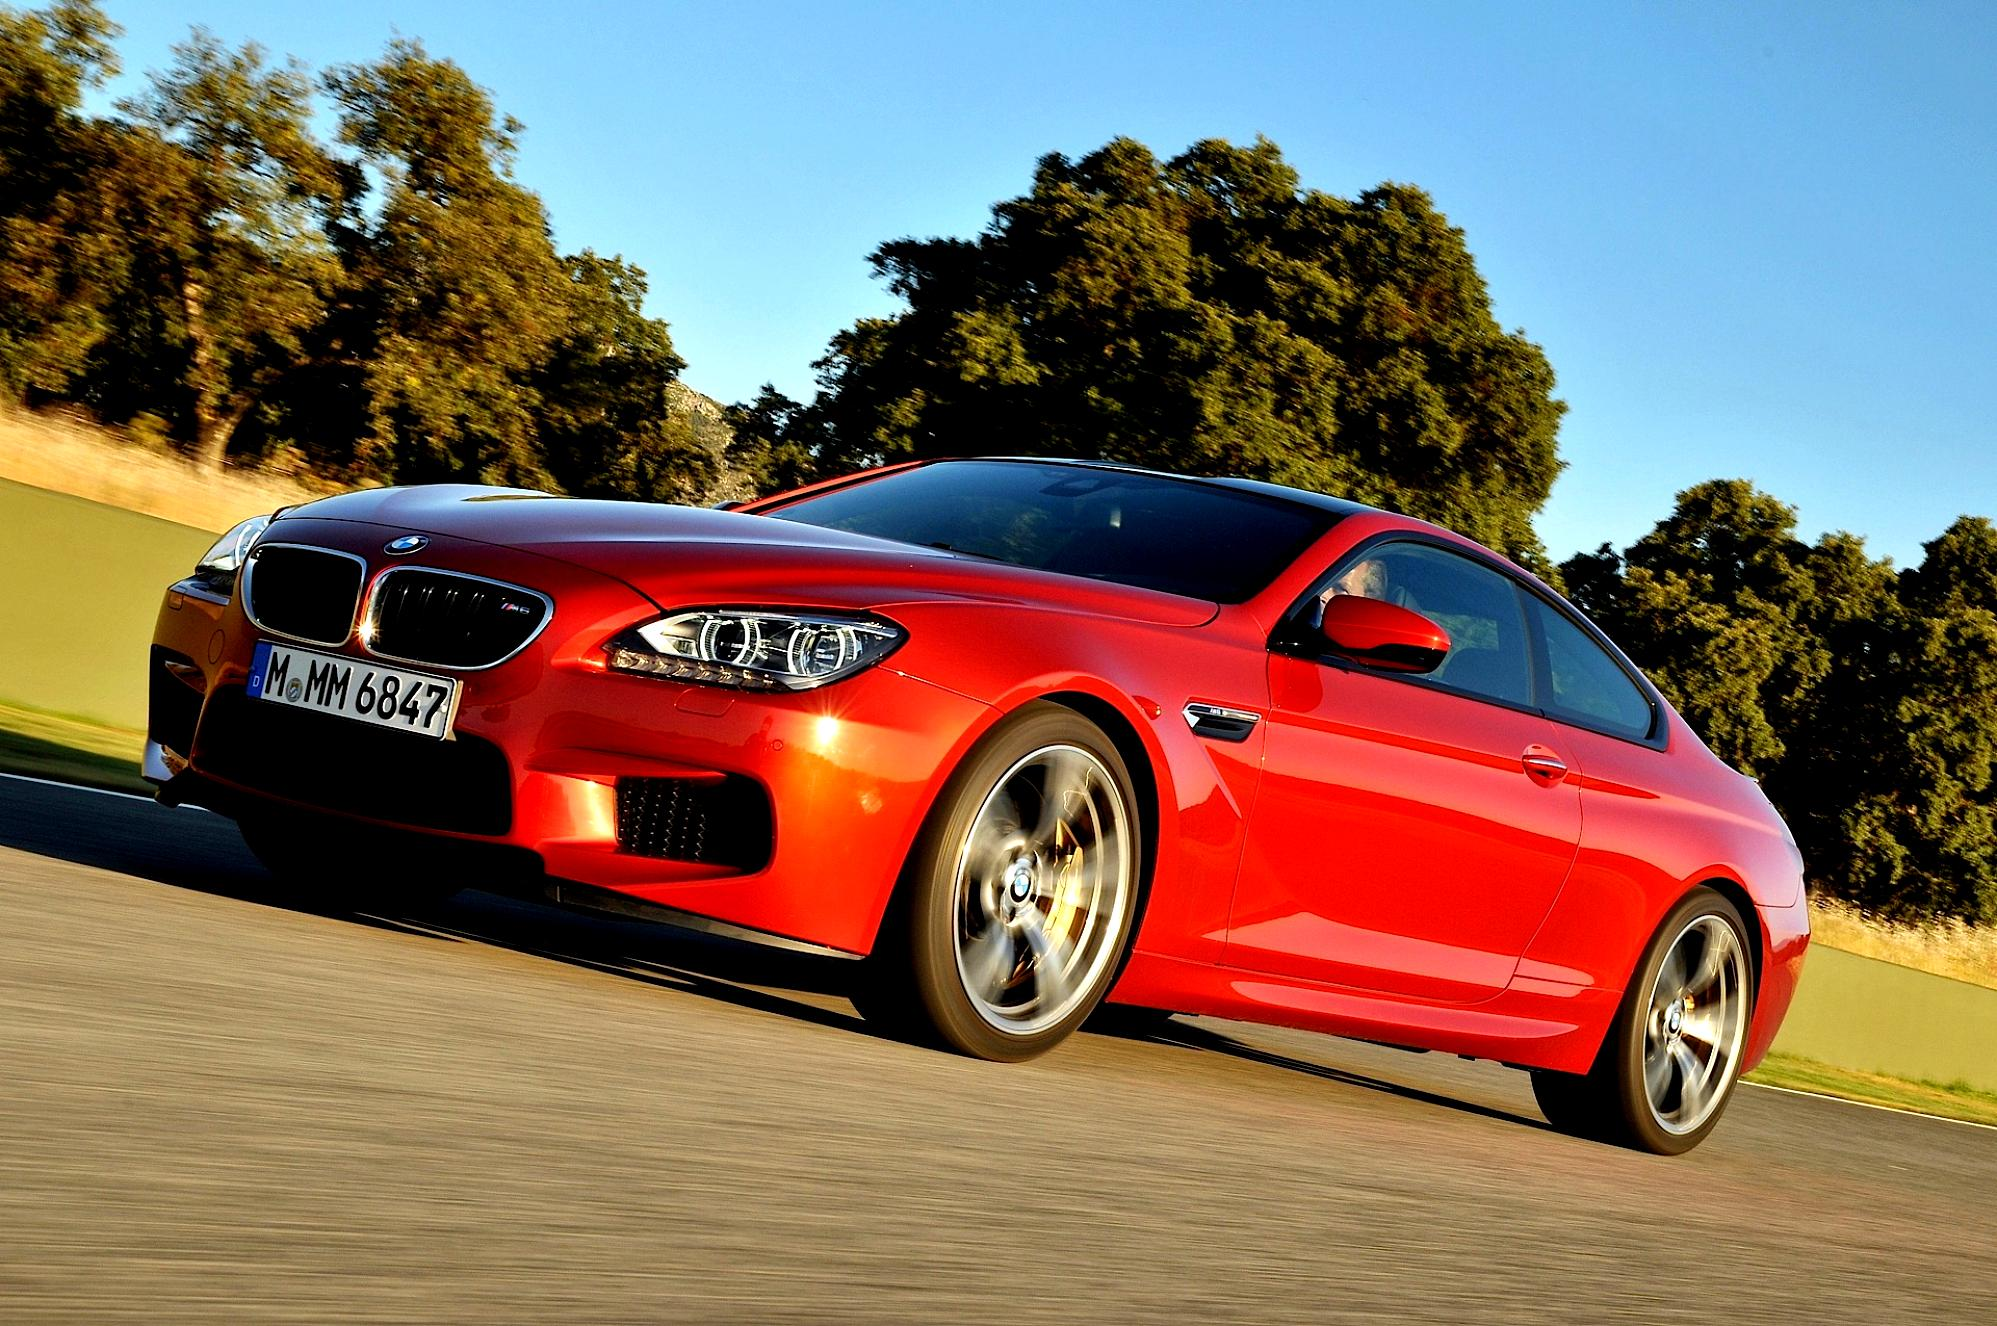 BMW M6 Coupe F13 2012 #46